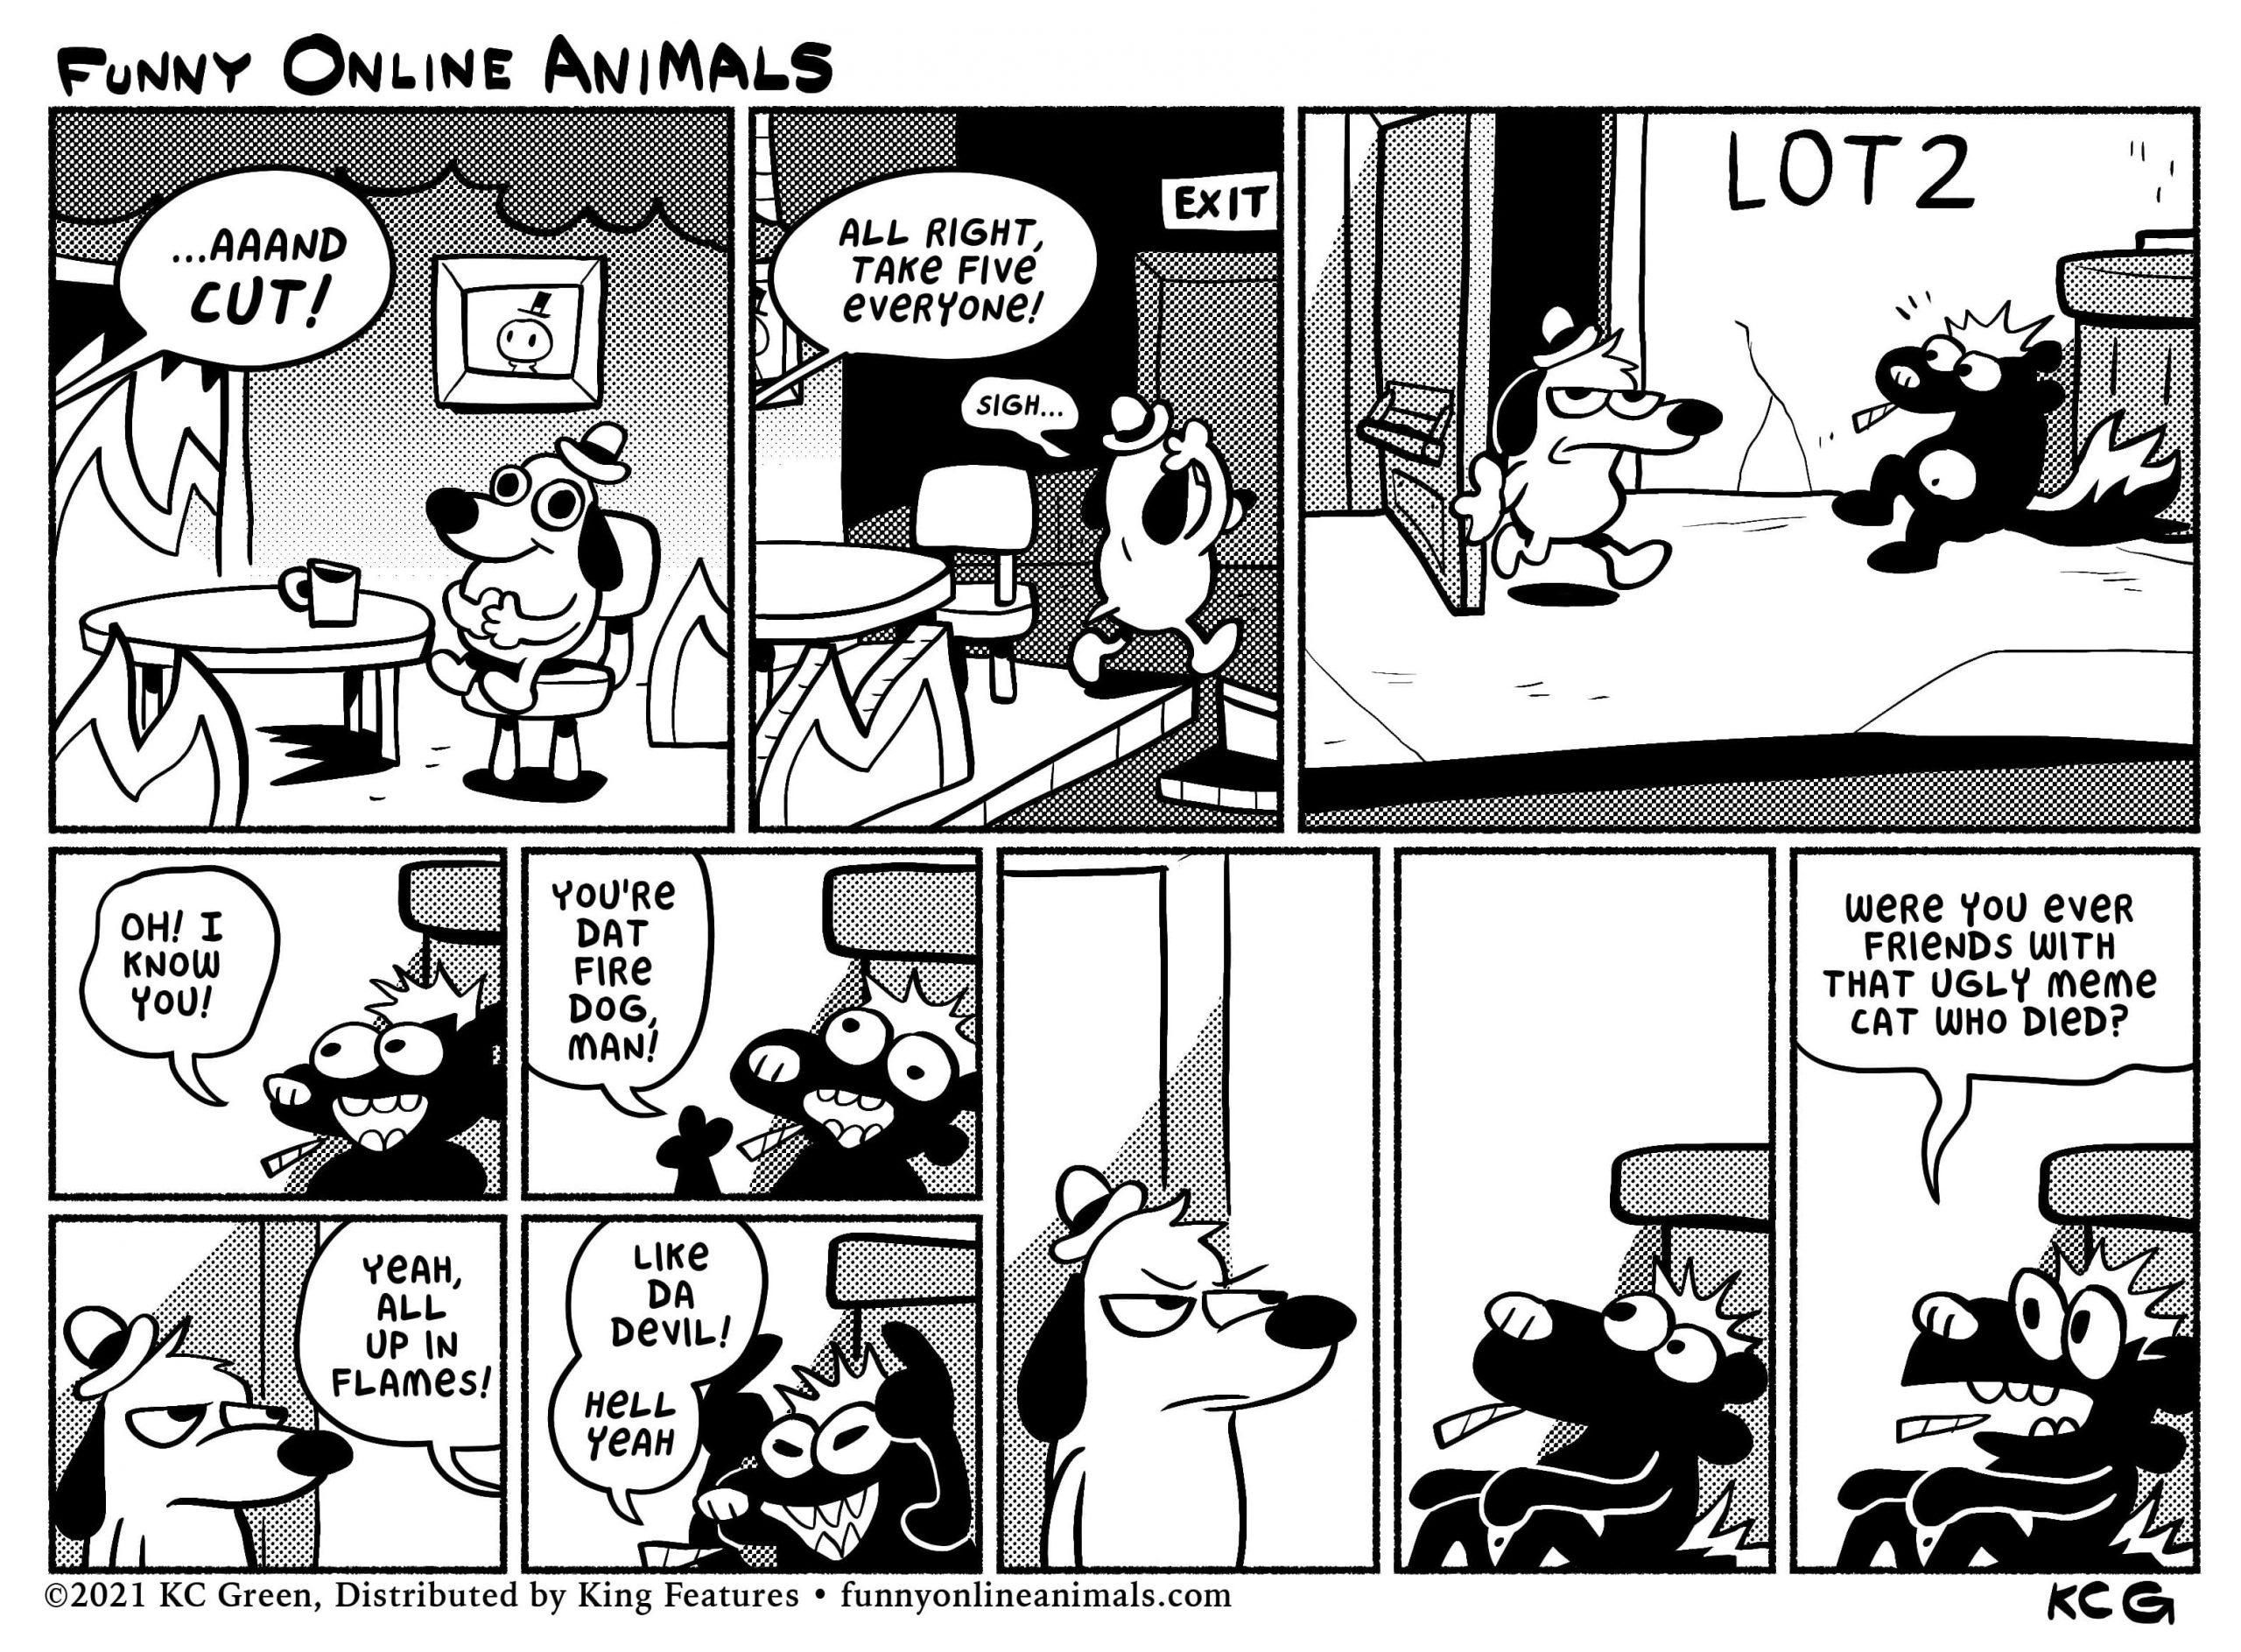 Funny Online Animals by KC Green.